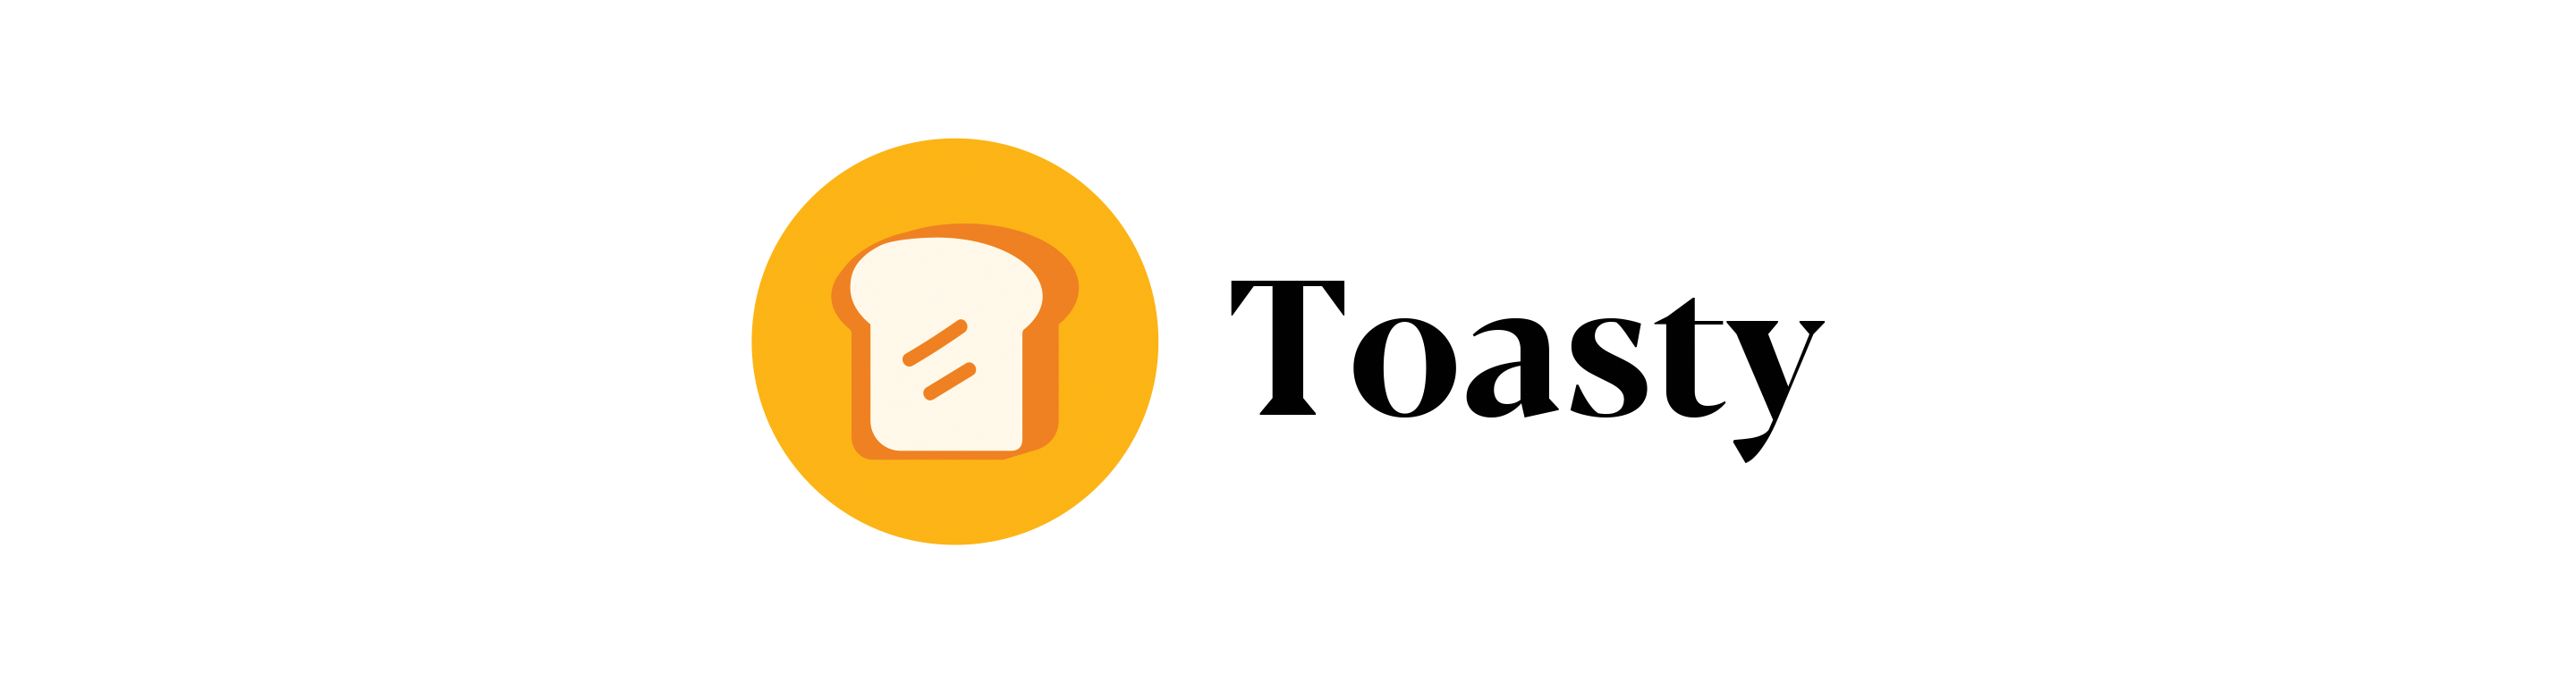 toasty-logo-cover